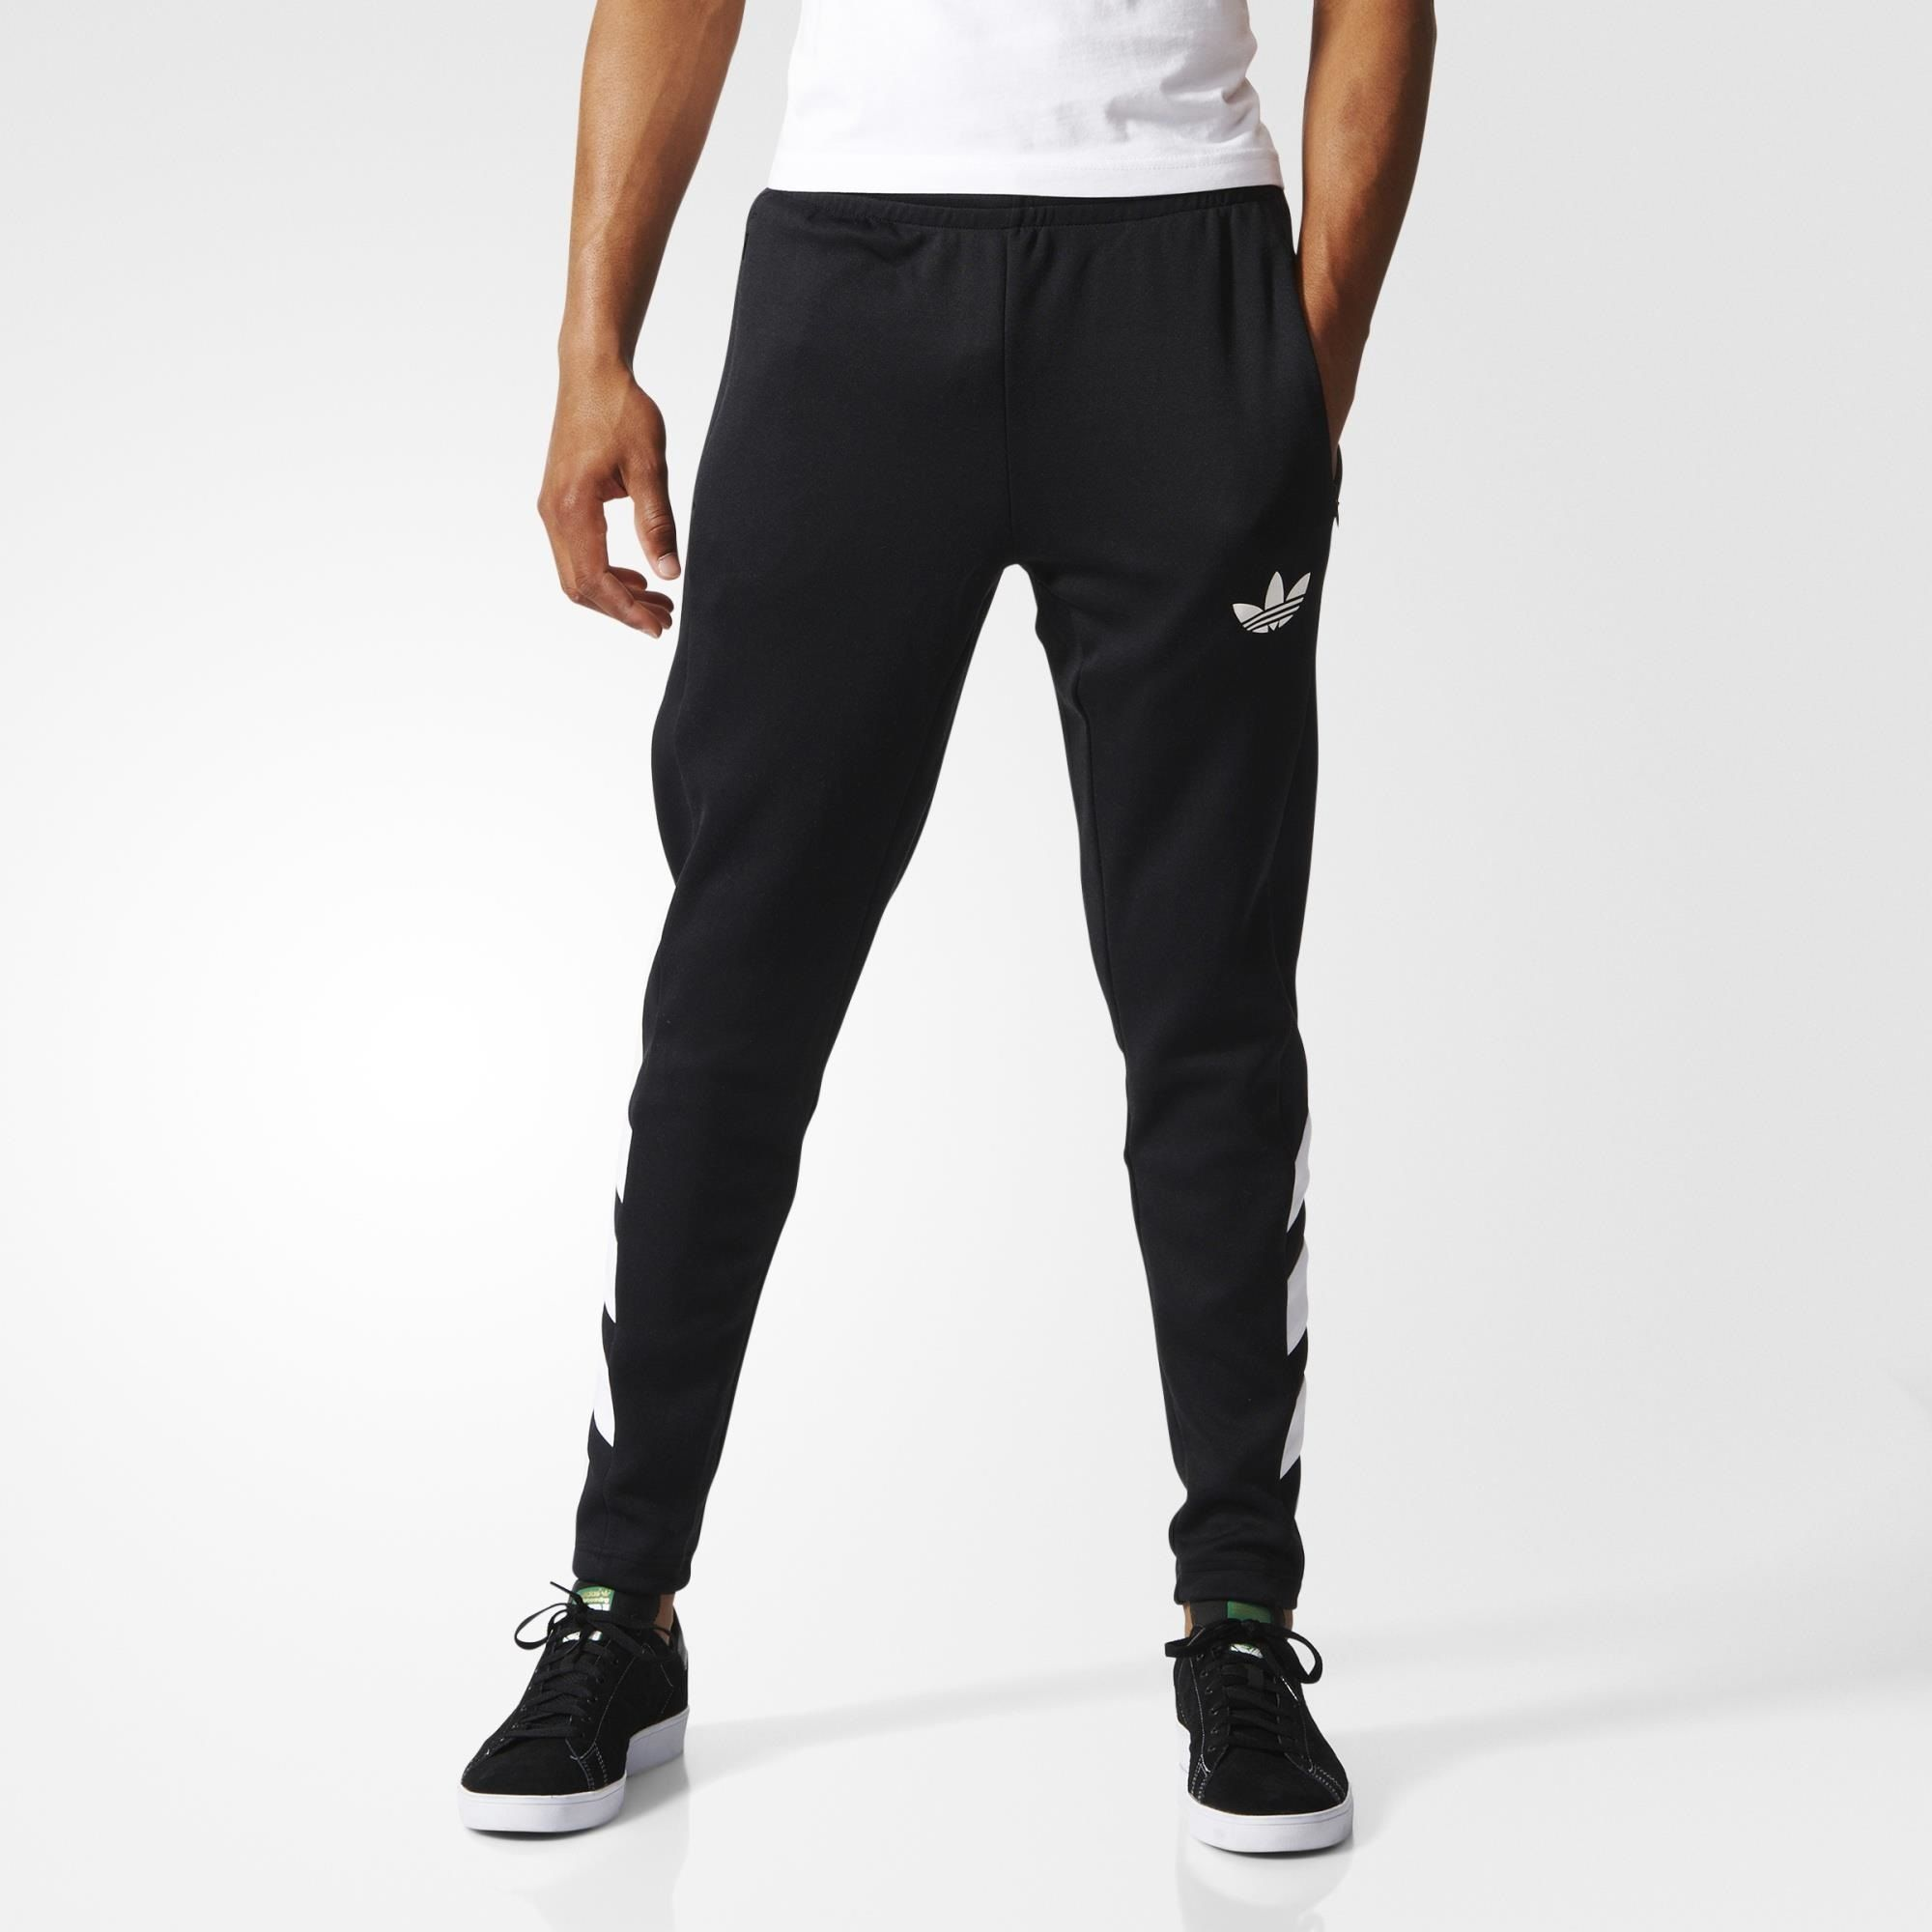 Inspired by soccer style, these men's track pants have a dynamic look. Made  in